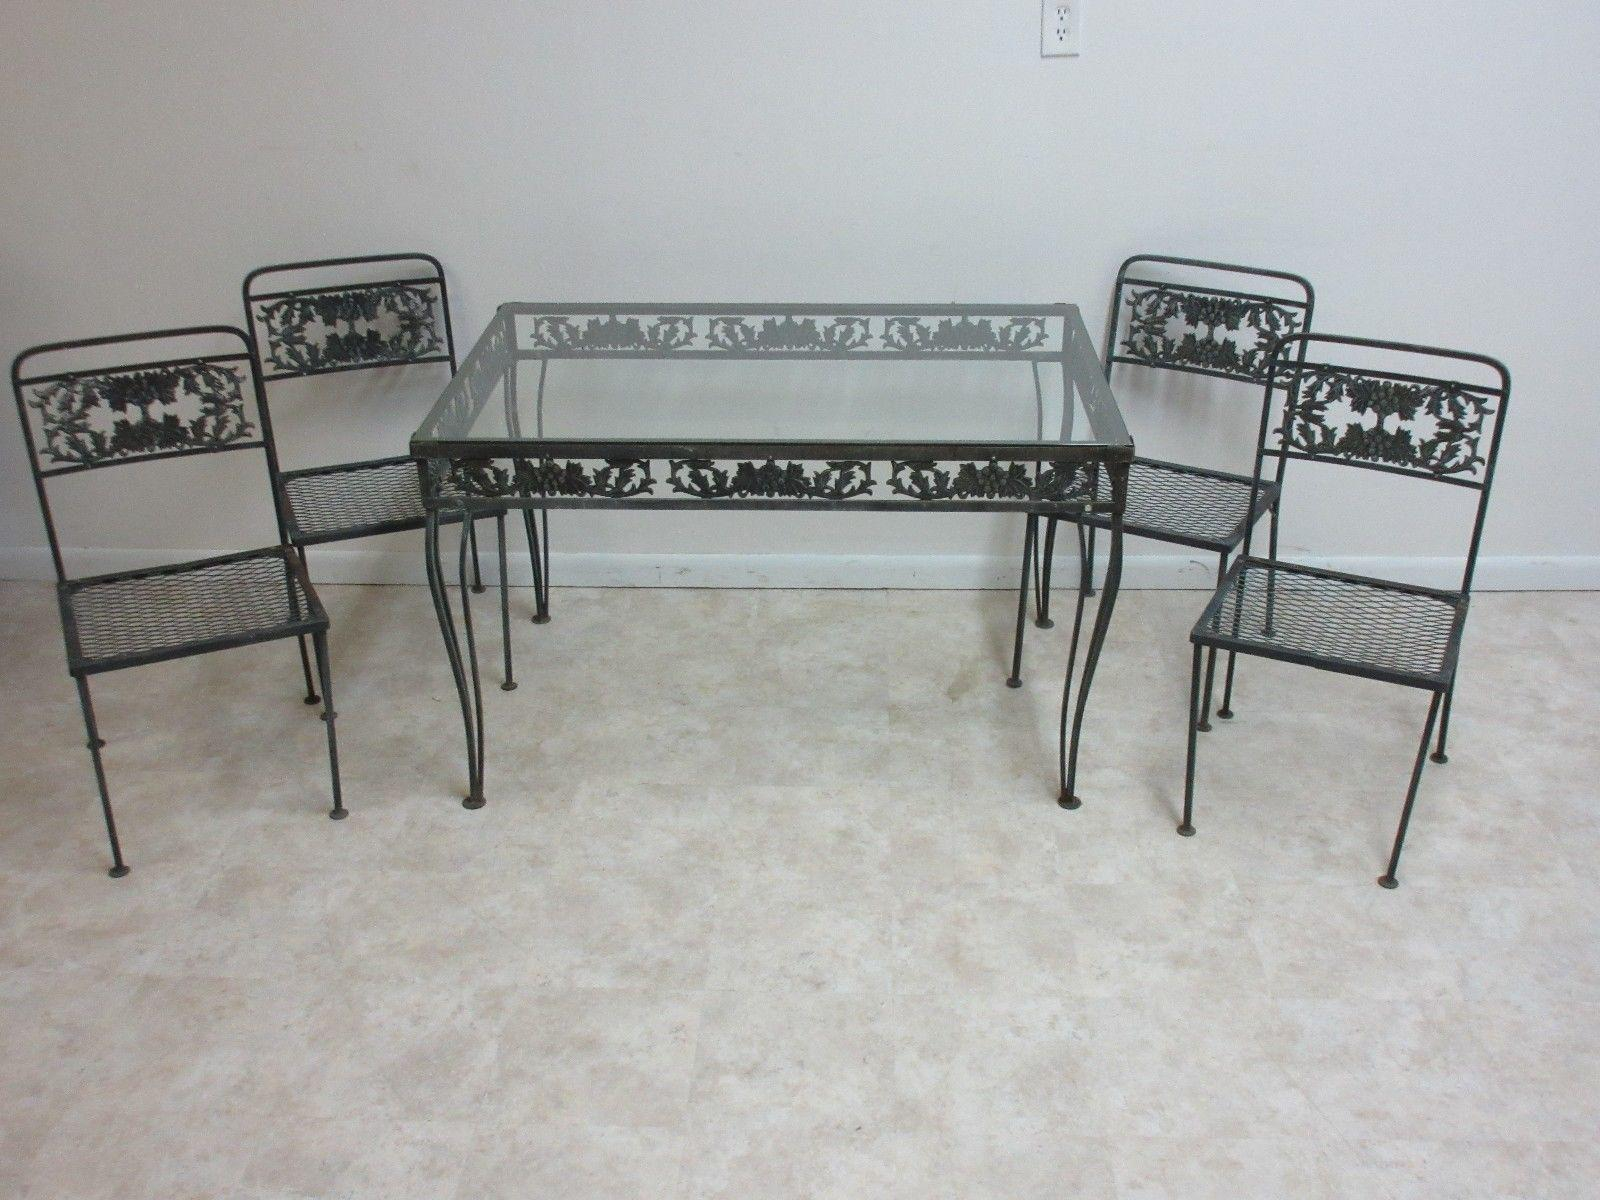 Vintage Outdoor Cast Aluminum Patio Porch Dining Table U0026 Chairs   Set Of 5    Image